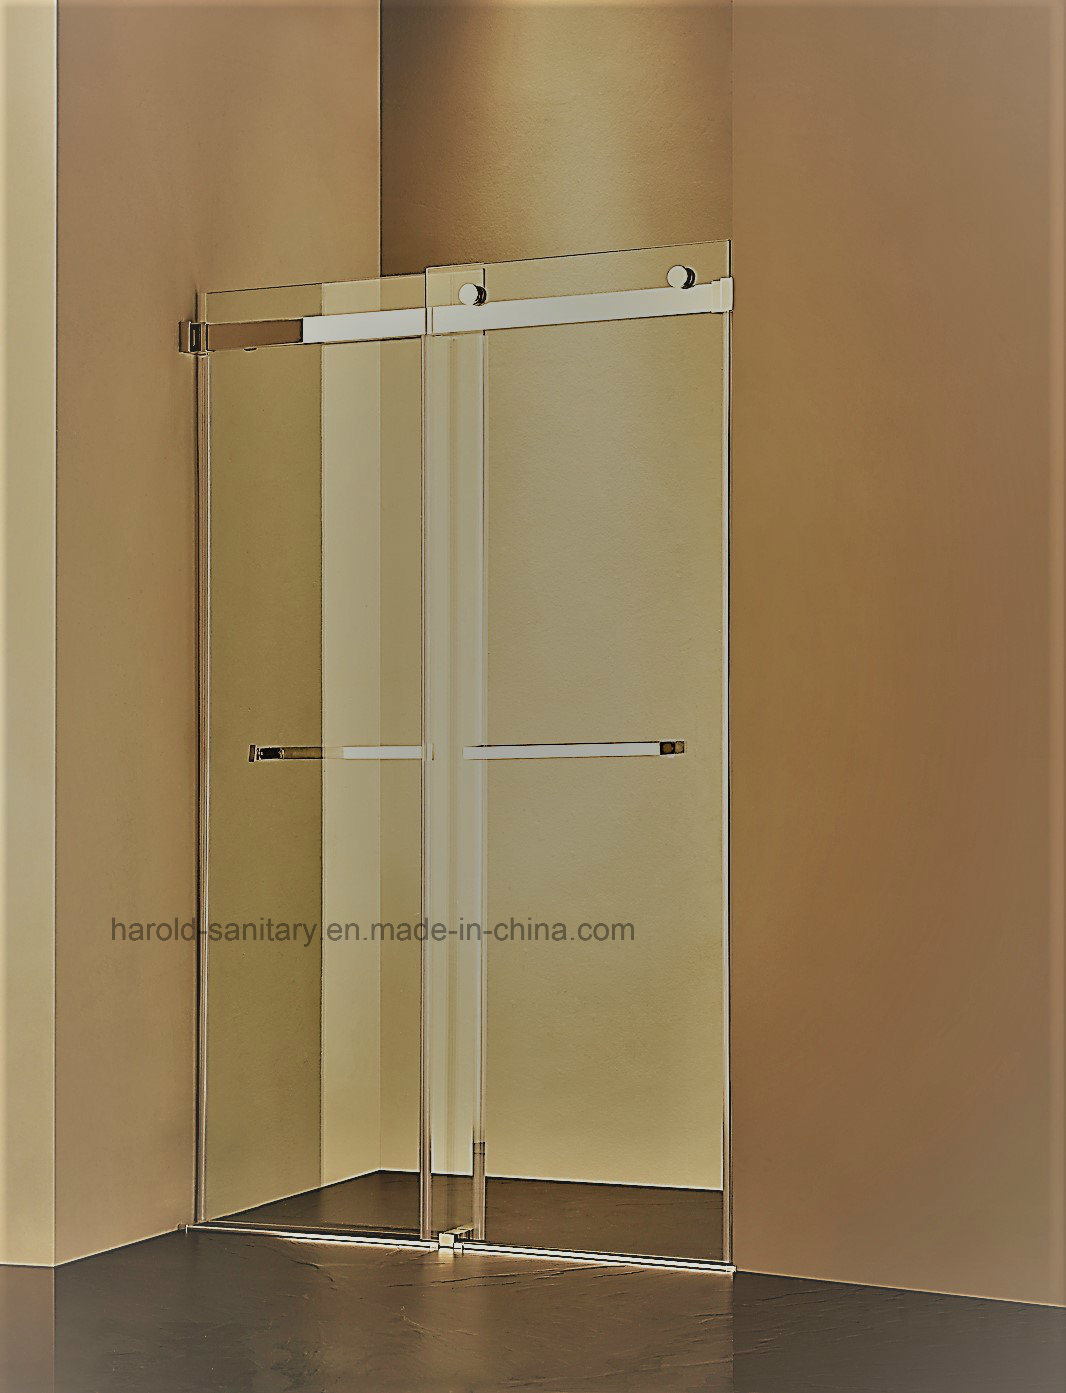 Hr-022-D Frameless Double Sliding Shower Door